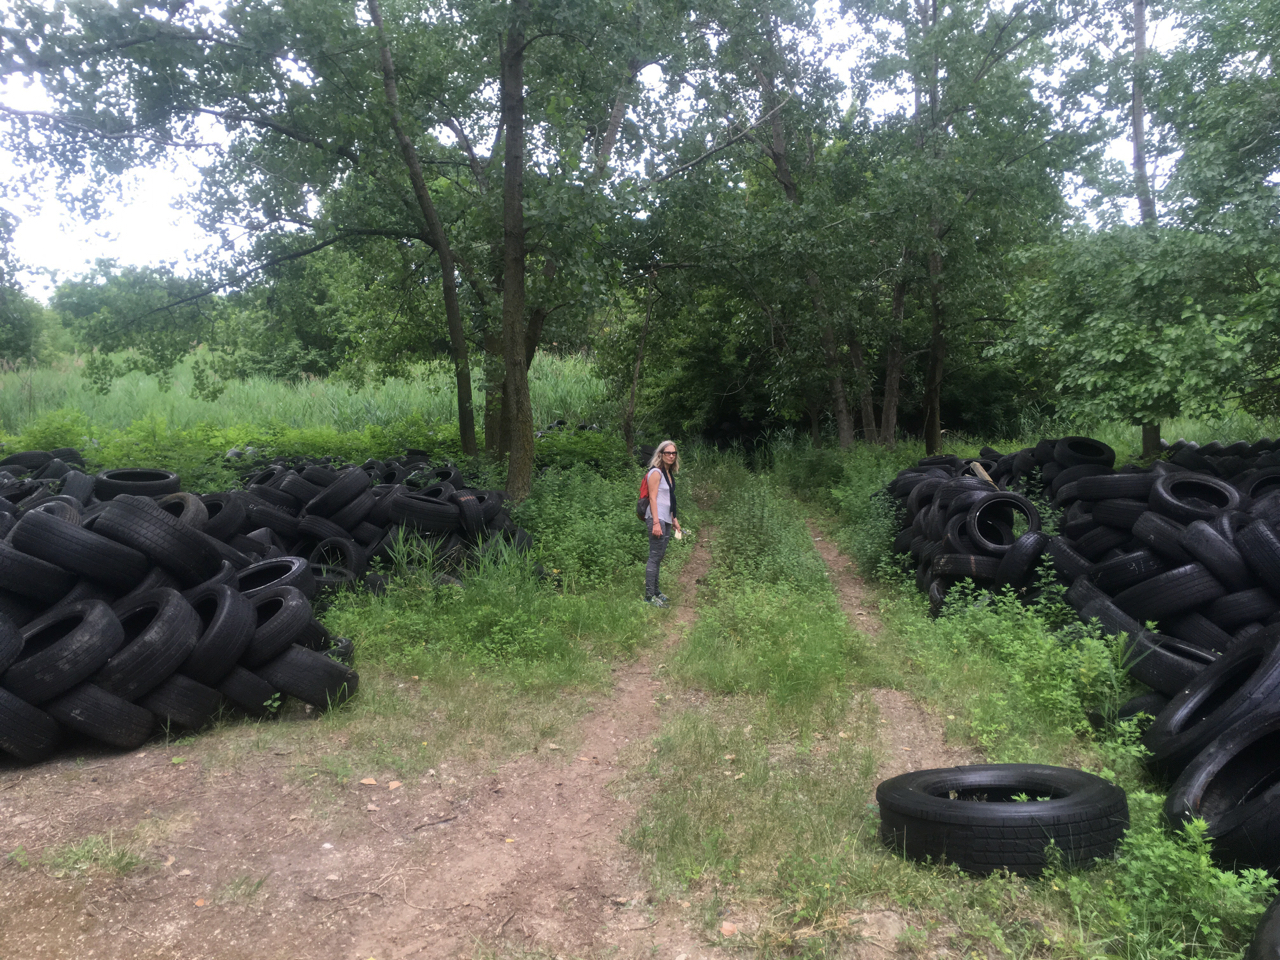 author in a field of tires